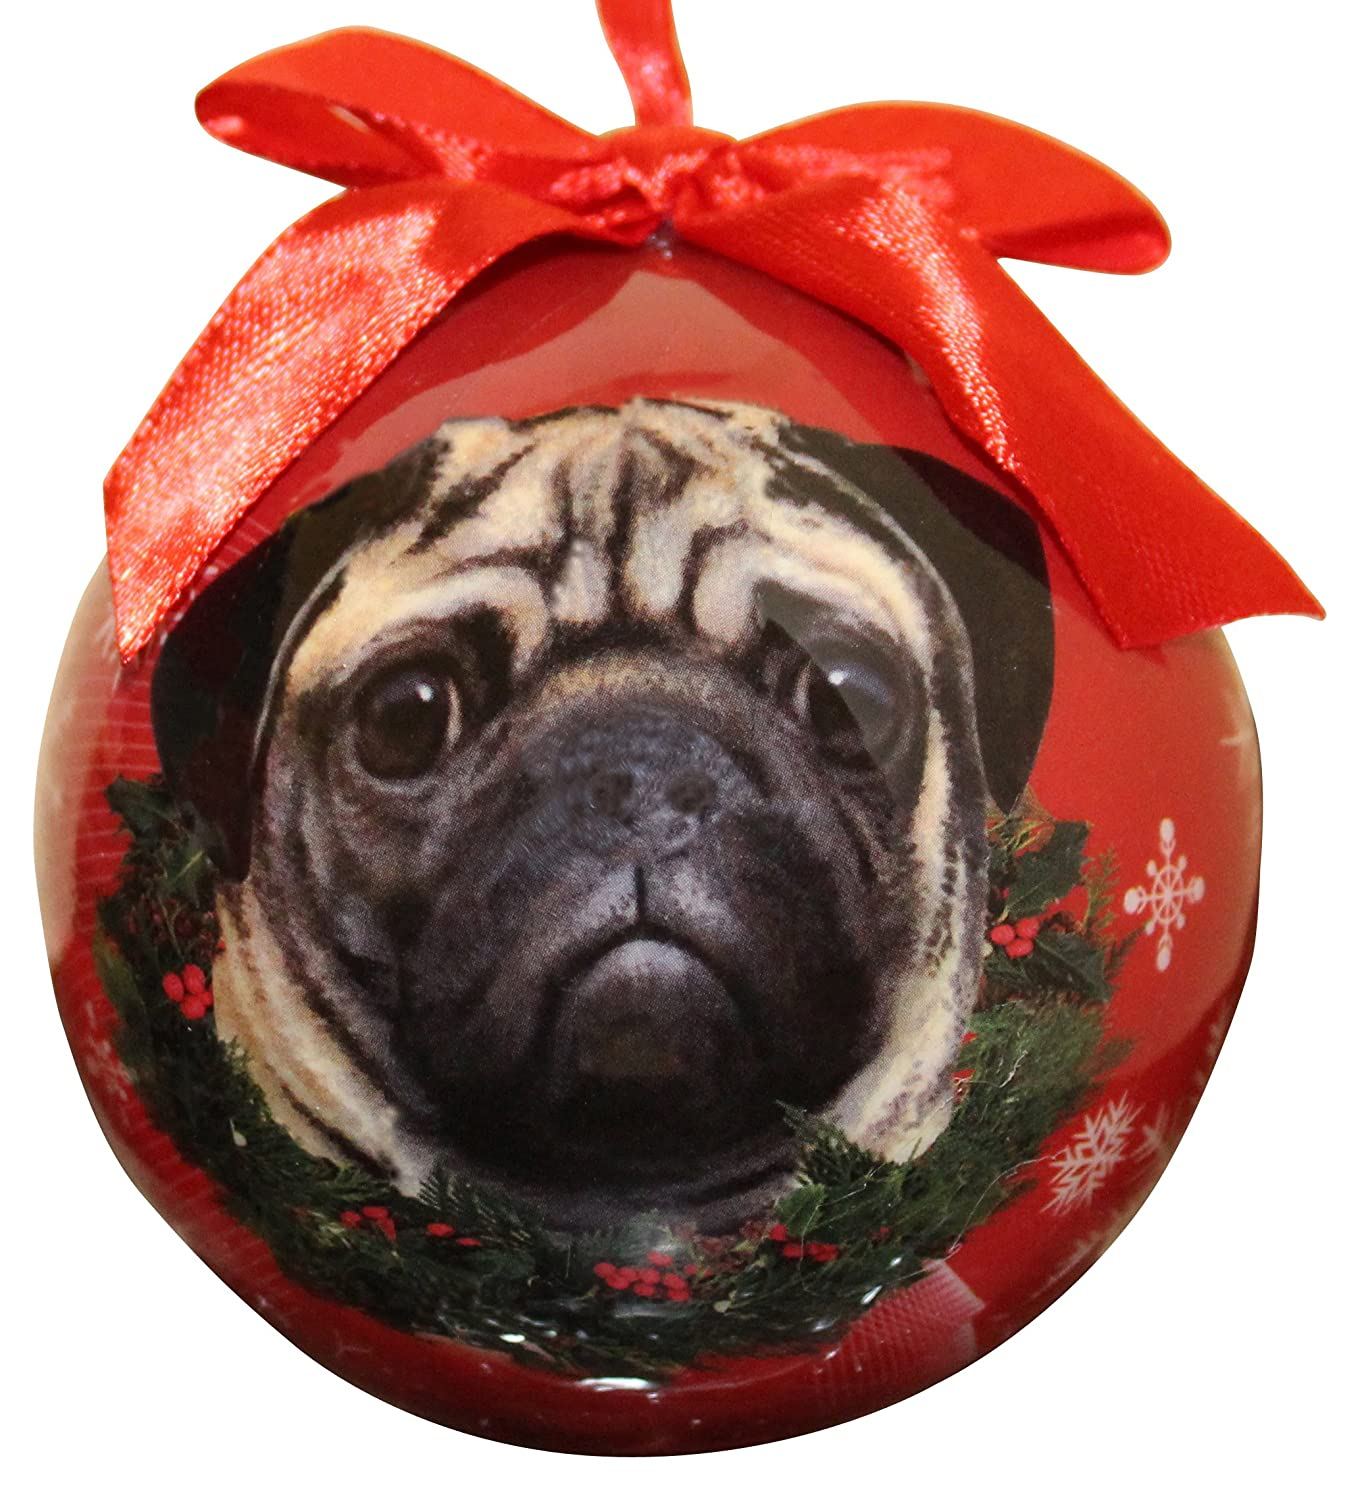 Pug Christmas Ornament Shatter Proof Ball Easy To Personalize A Perfect Gift For Pug Lovers E&S Pets